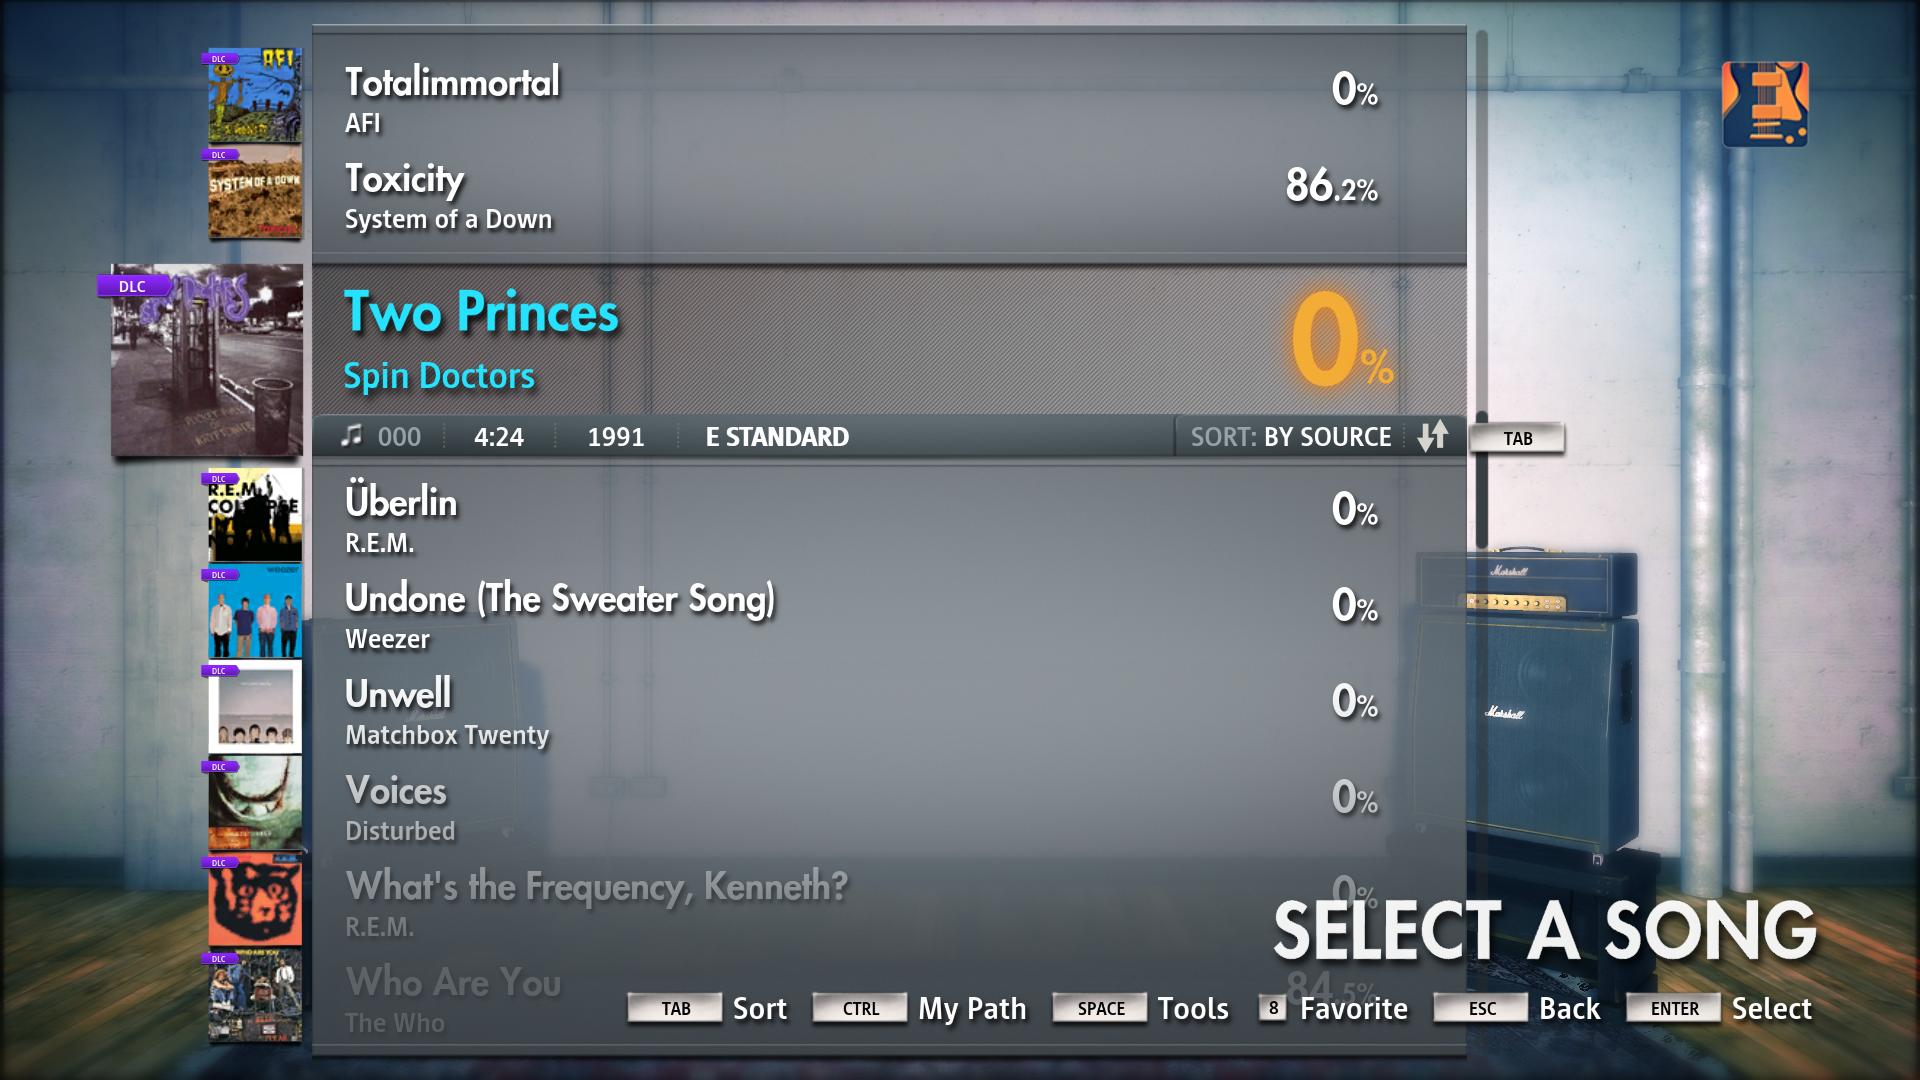 Rocksmith: All-new 2014 Edition - Spin Doctors: Two Princes 2014 pc game Img-2